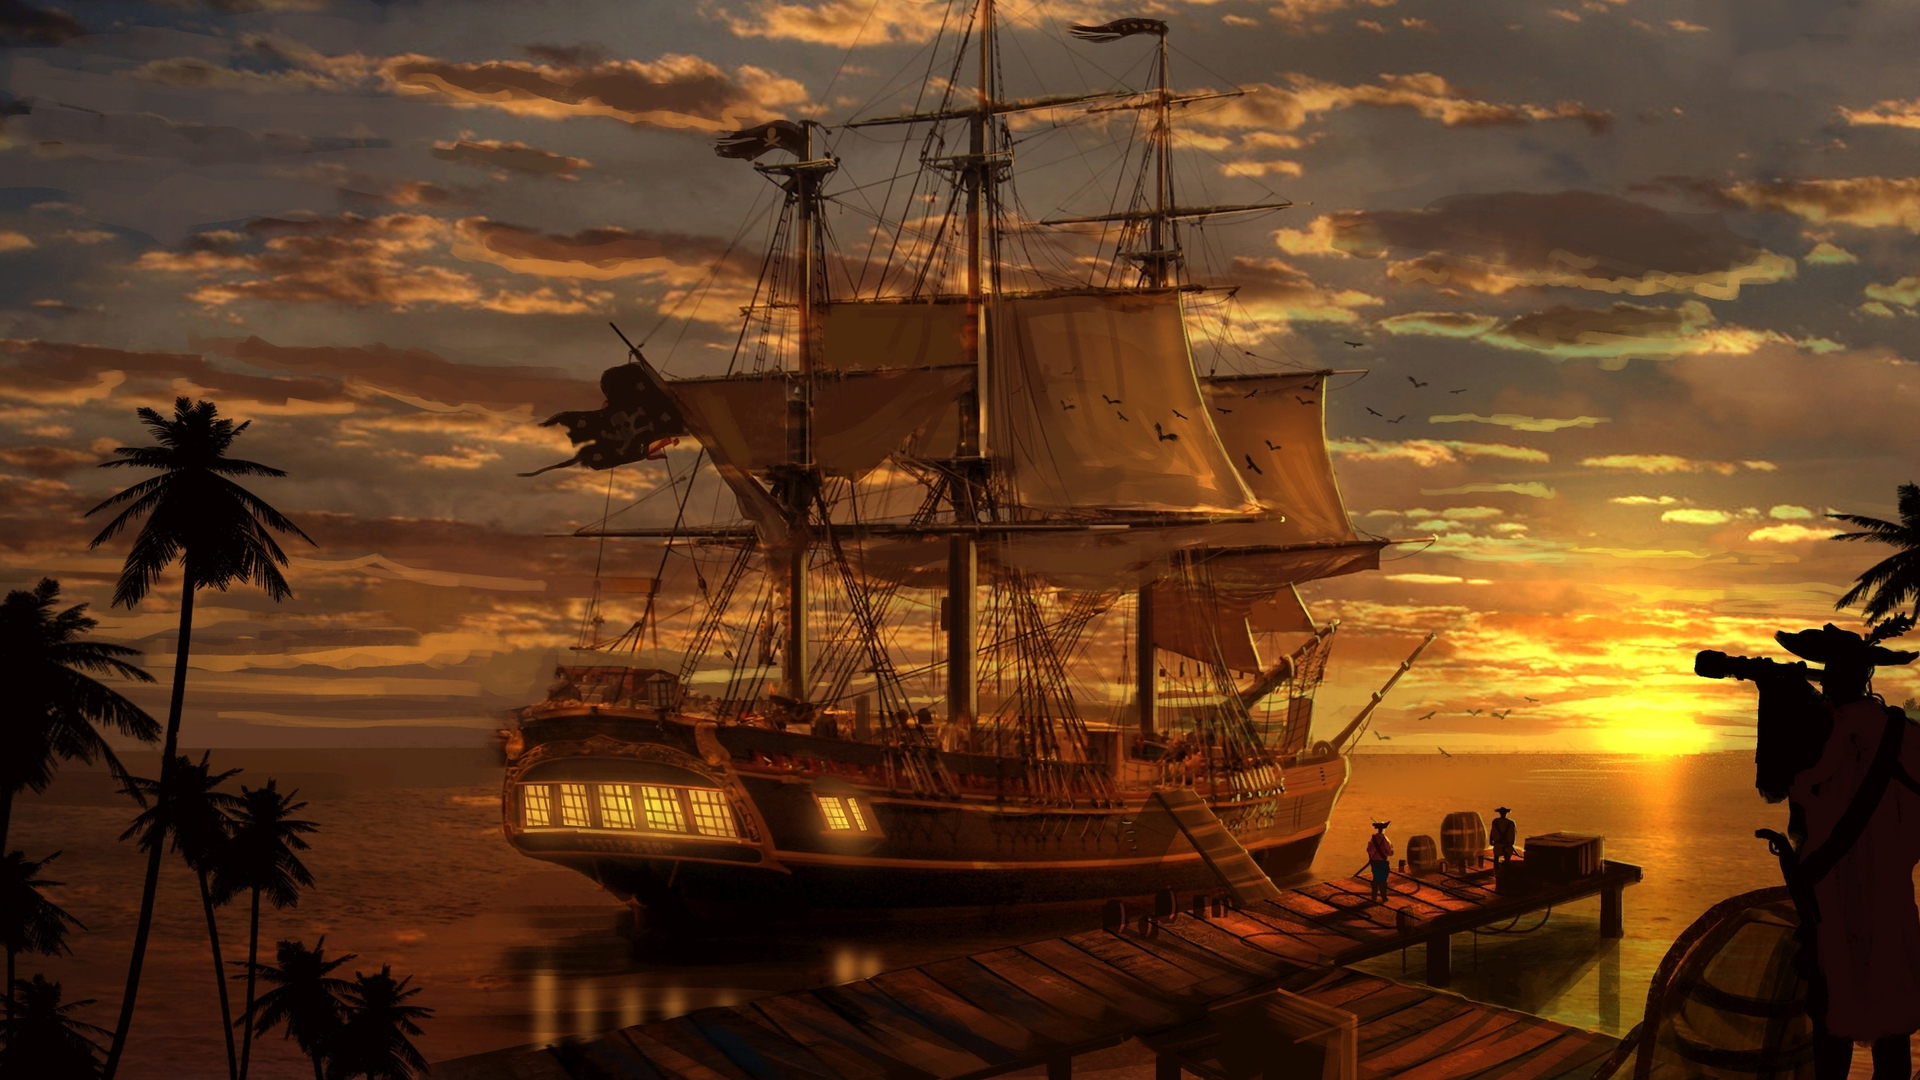 Pirate ship wallpaper 24699 1920x1080